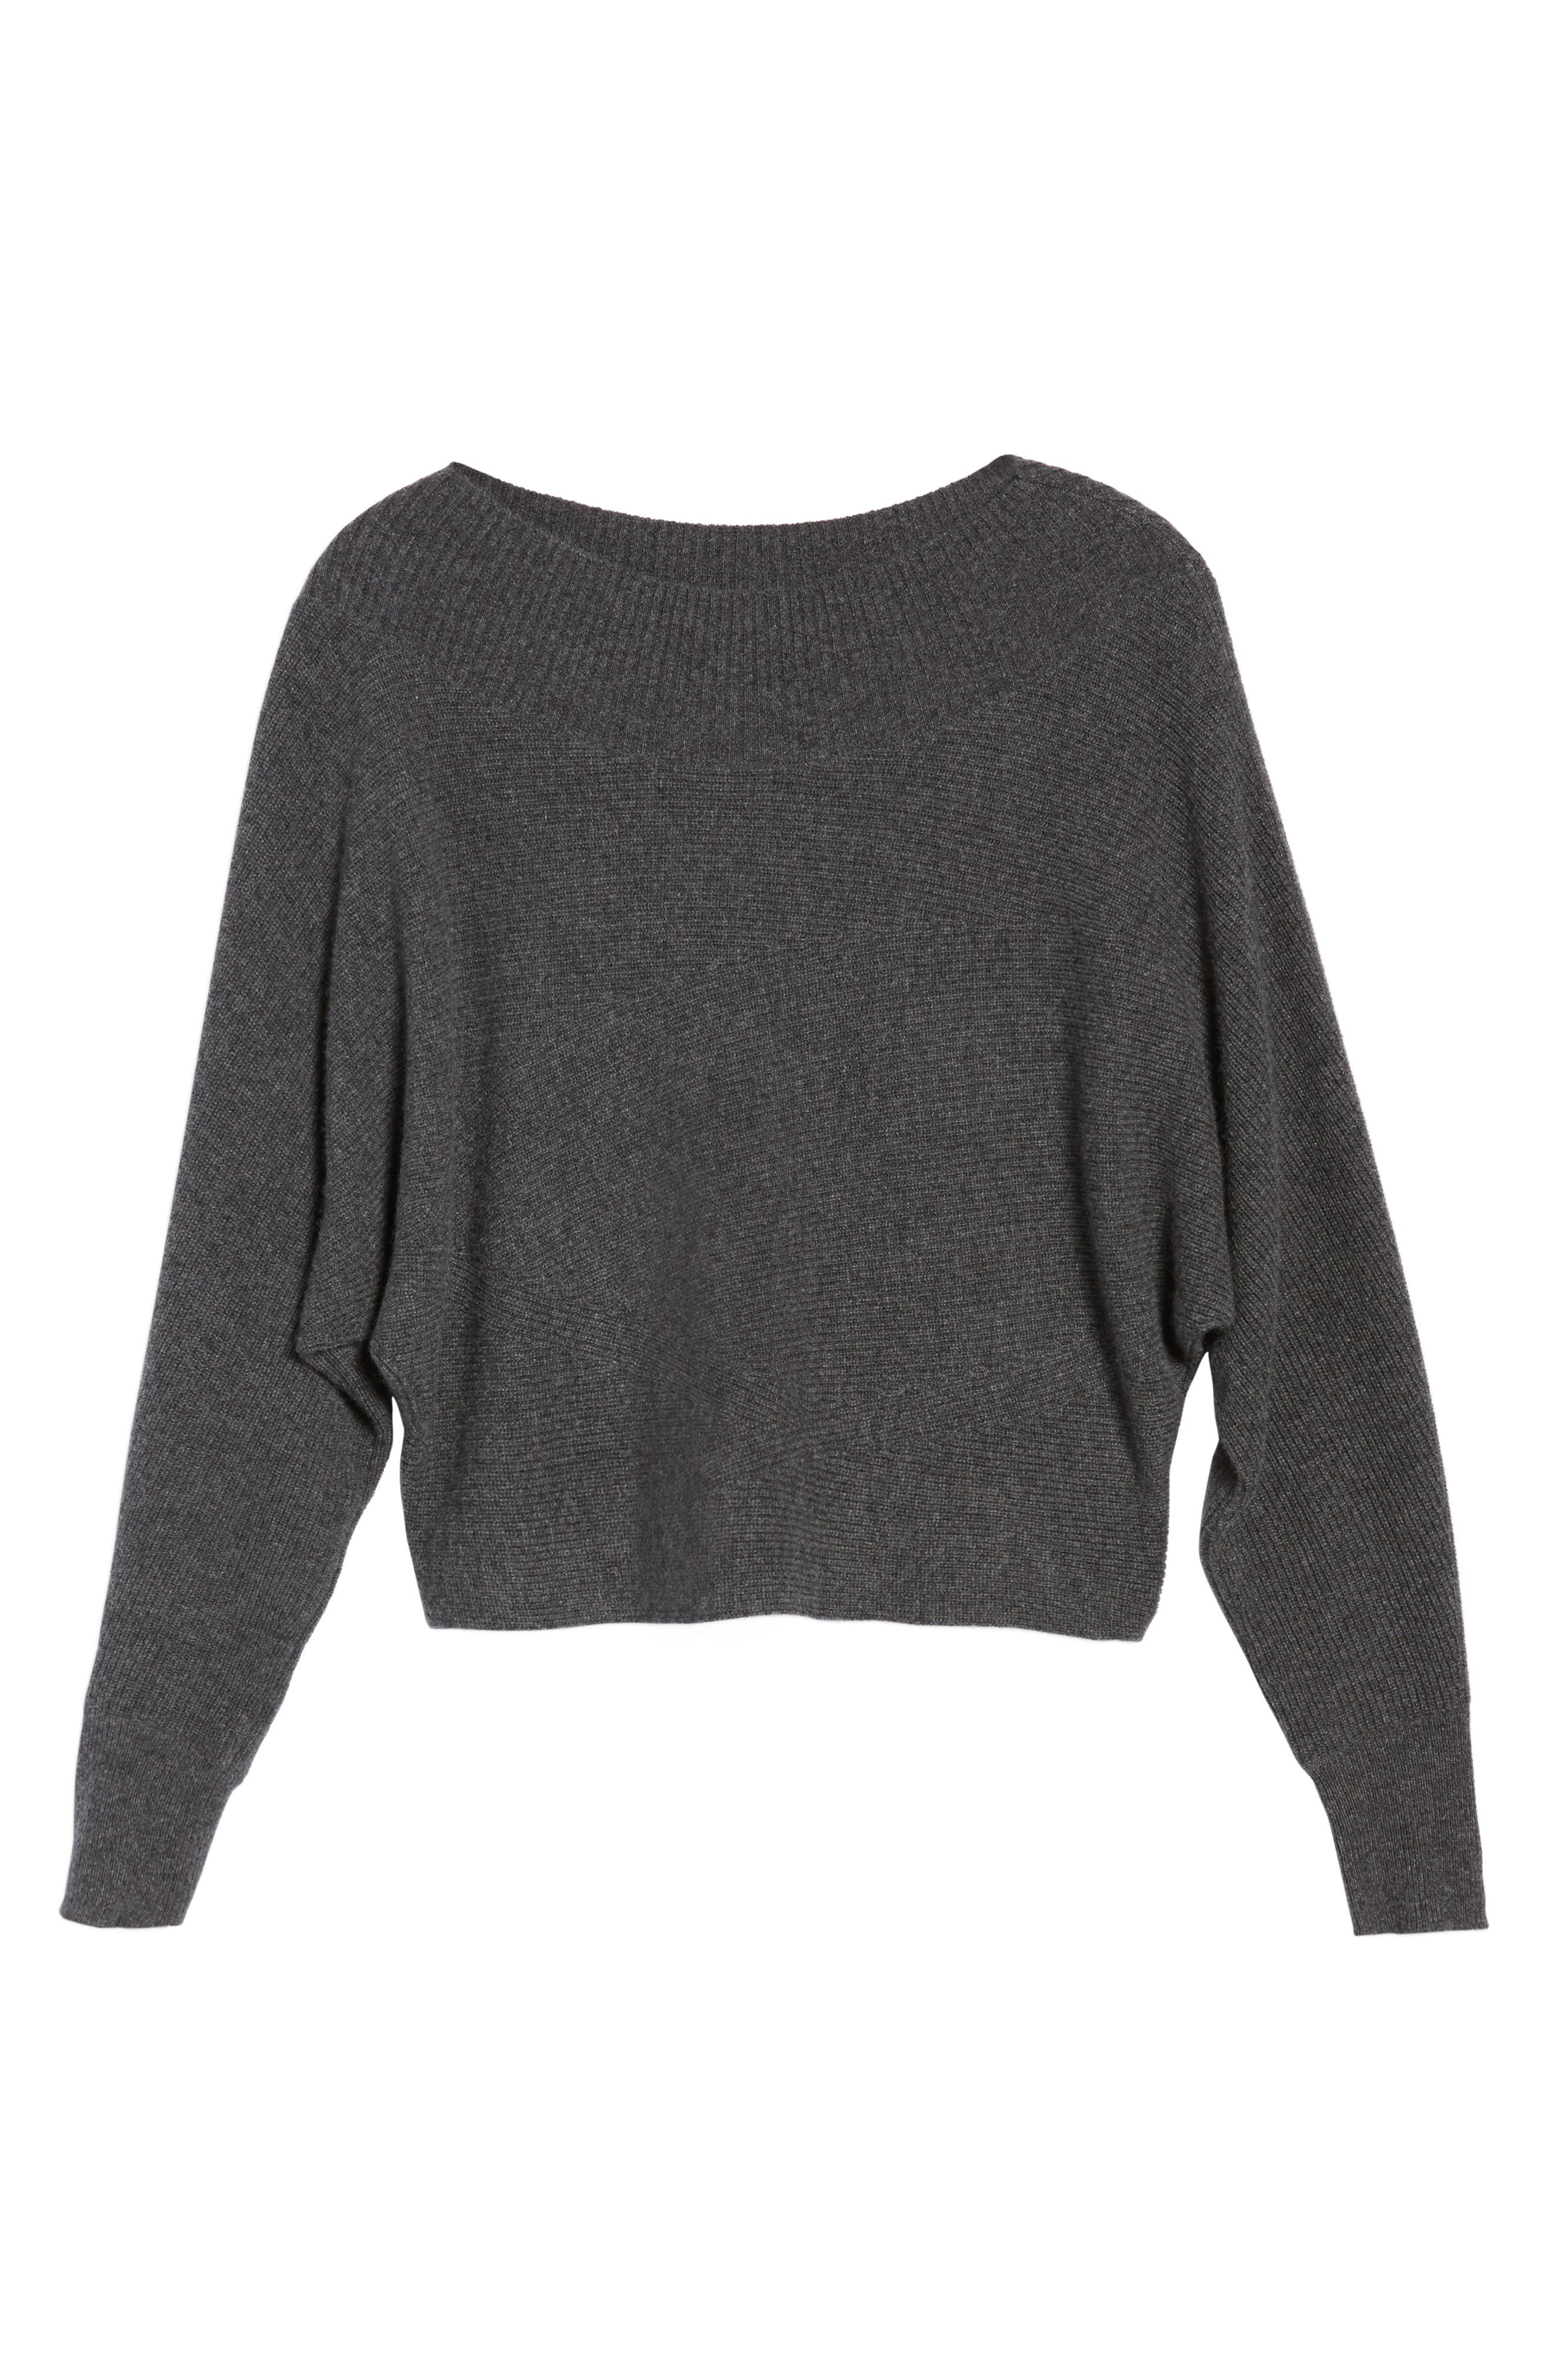 Dolman Sleeve Cashmere Sweater,                             Alternate thumbnail 6, color,                             030